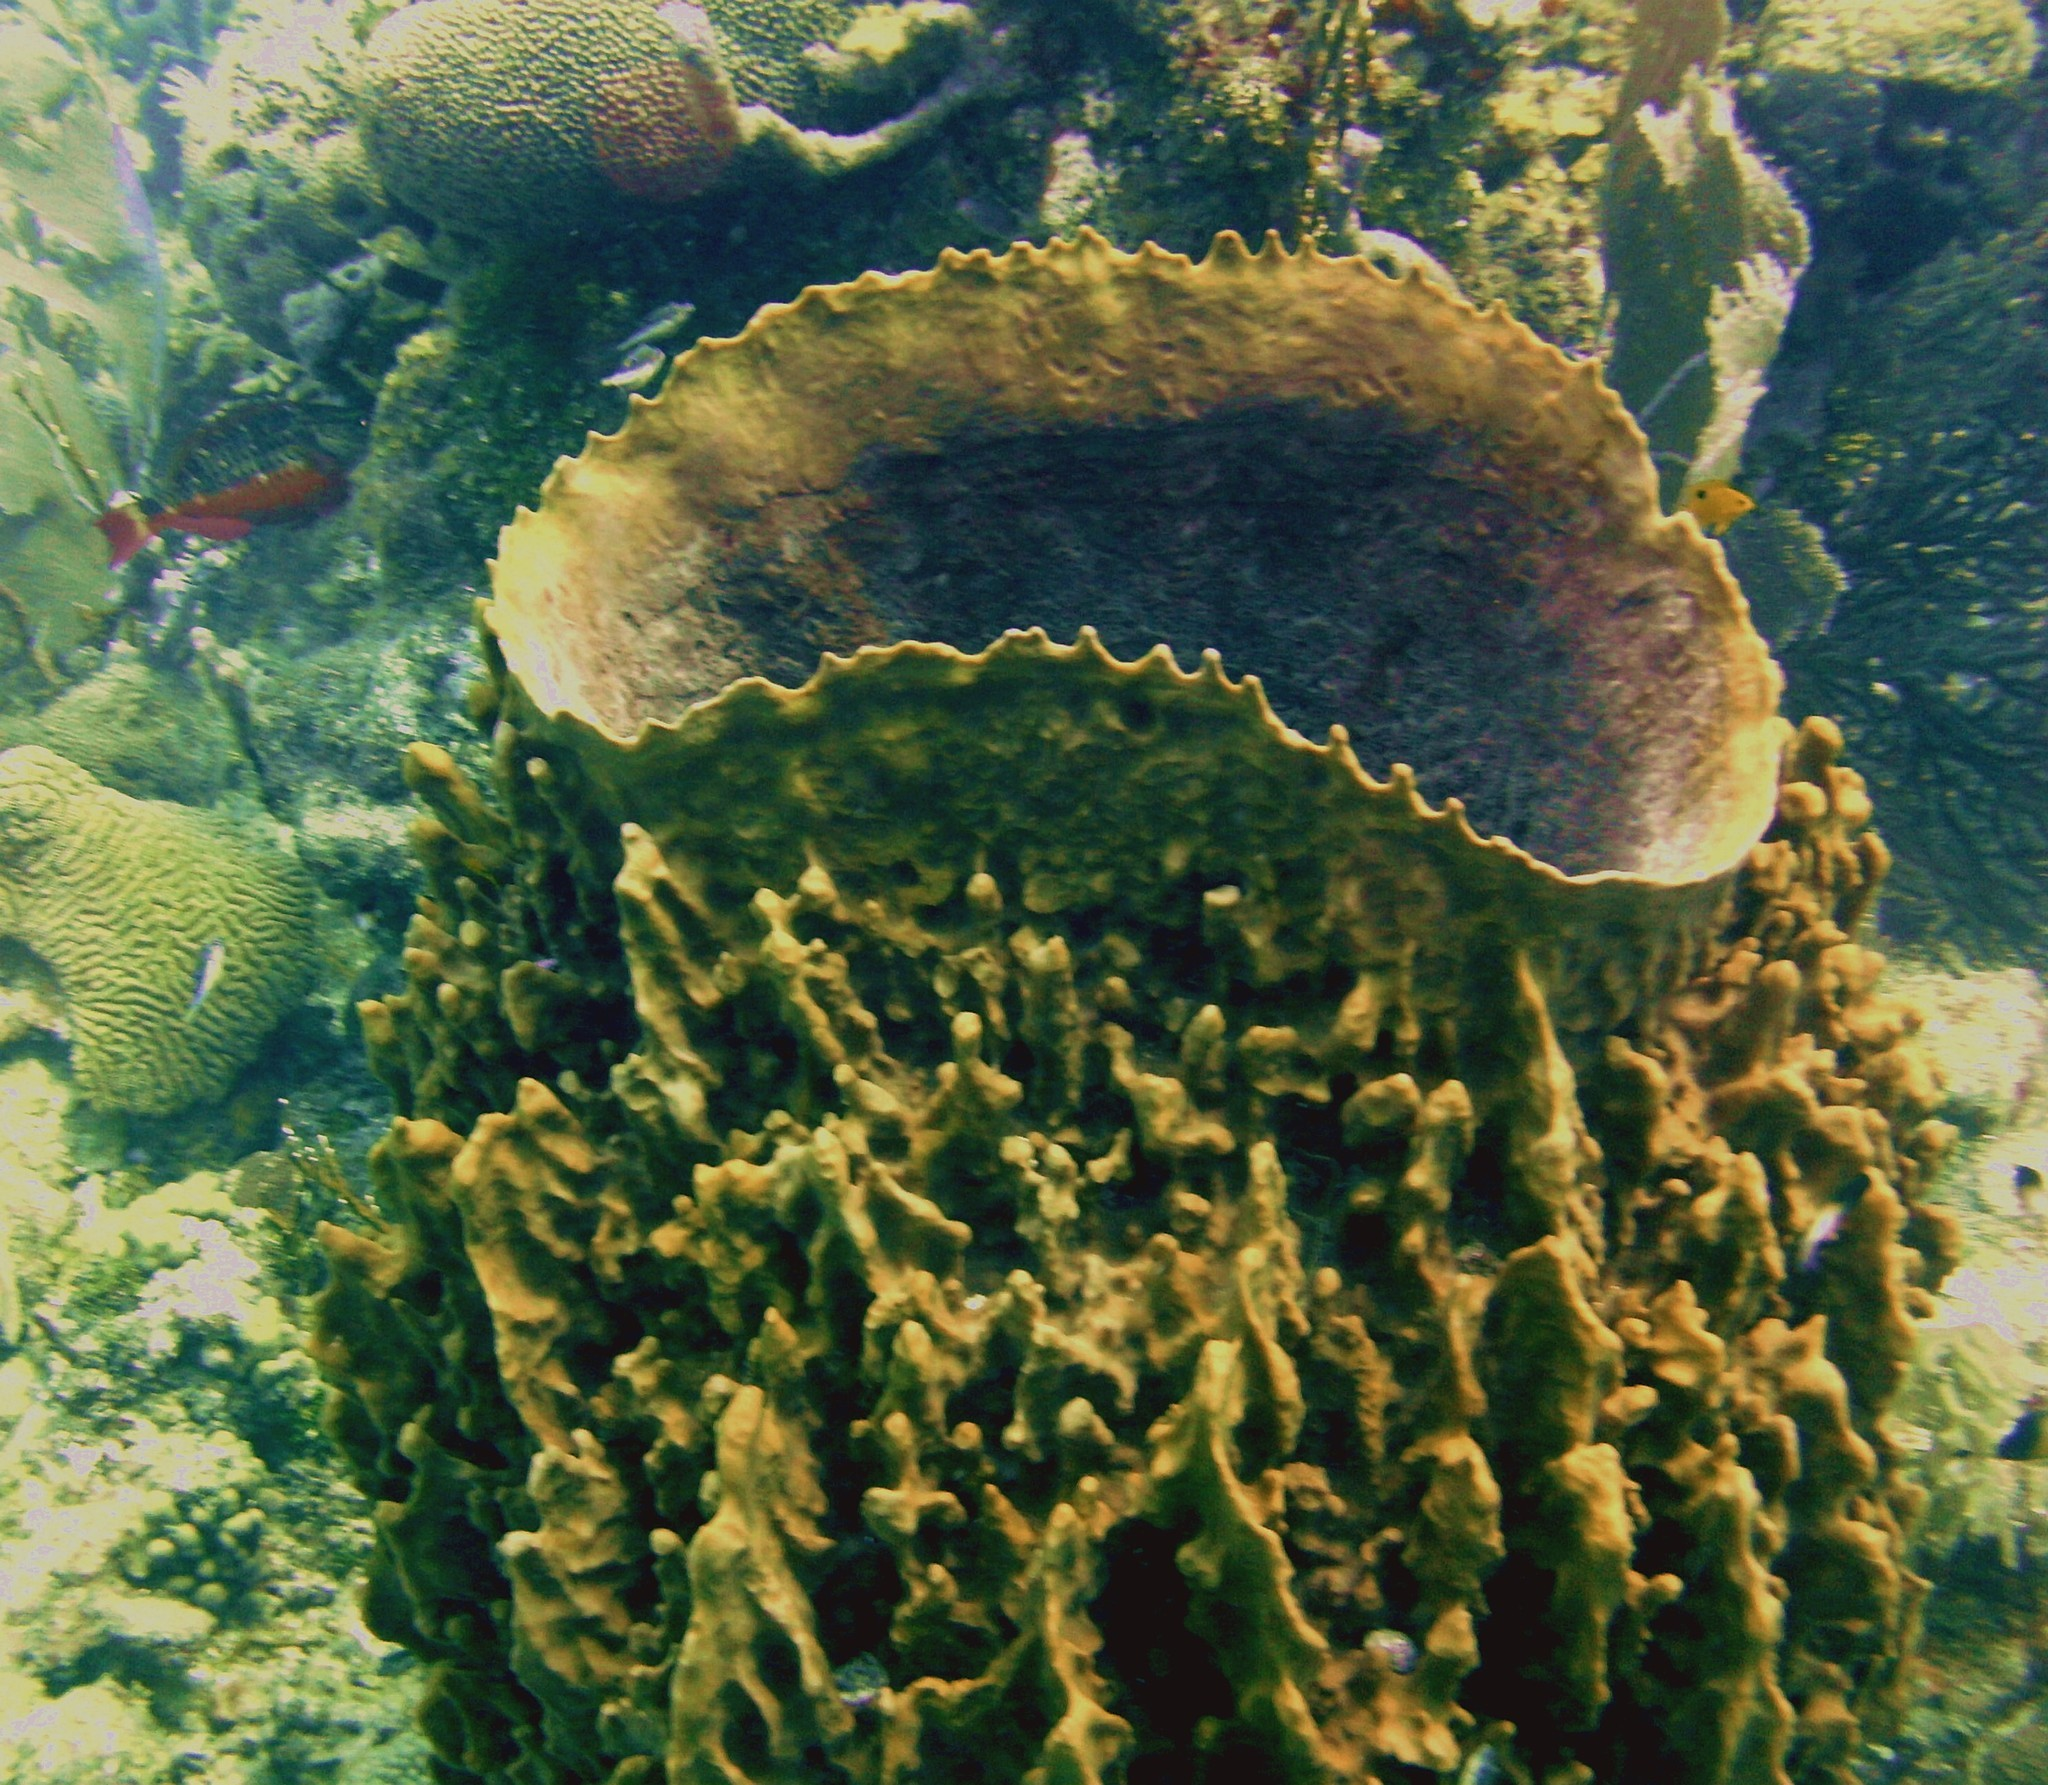 Image of giant barrel sponge